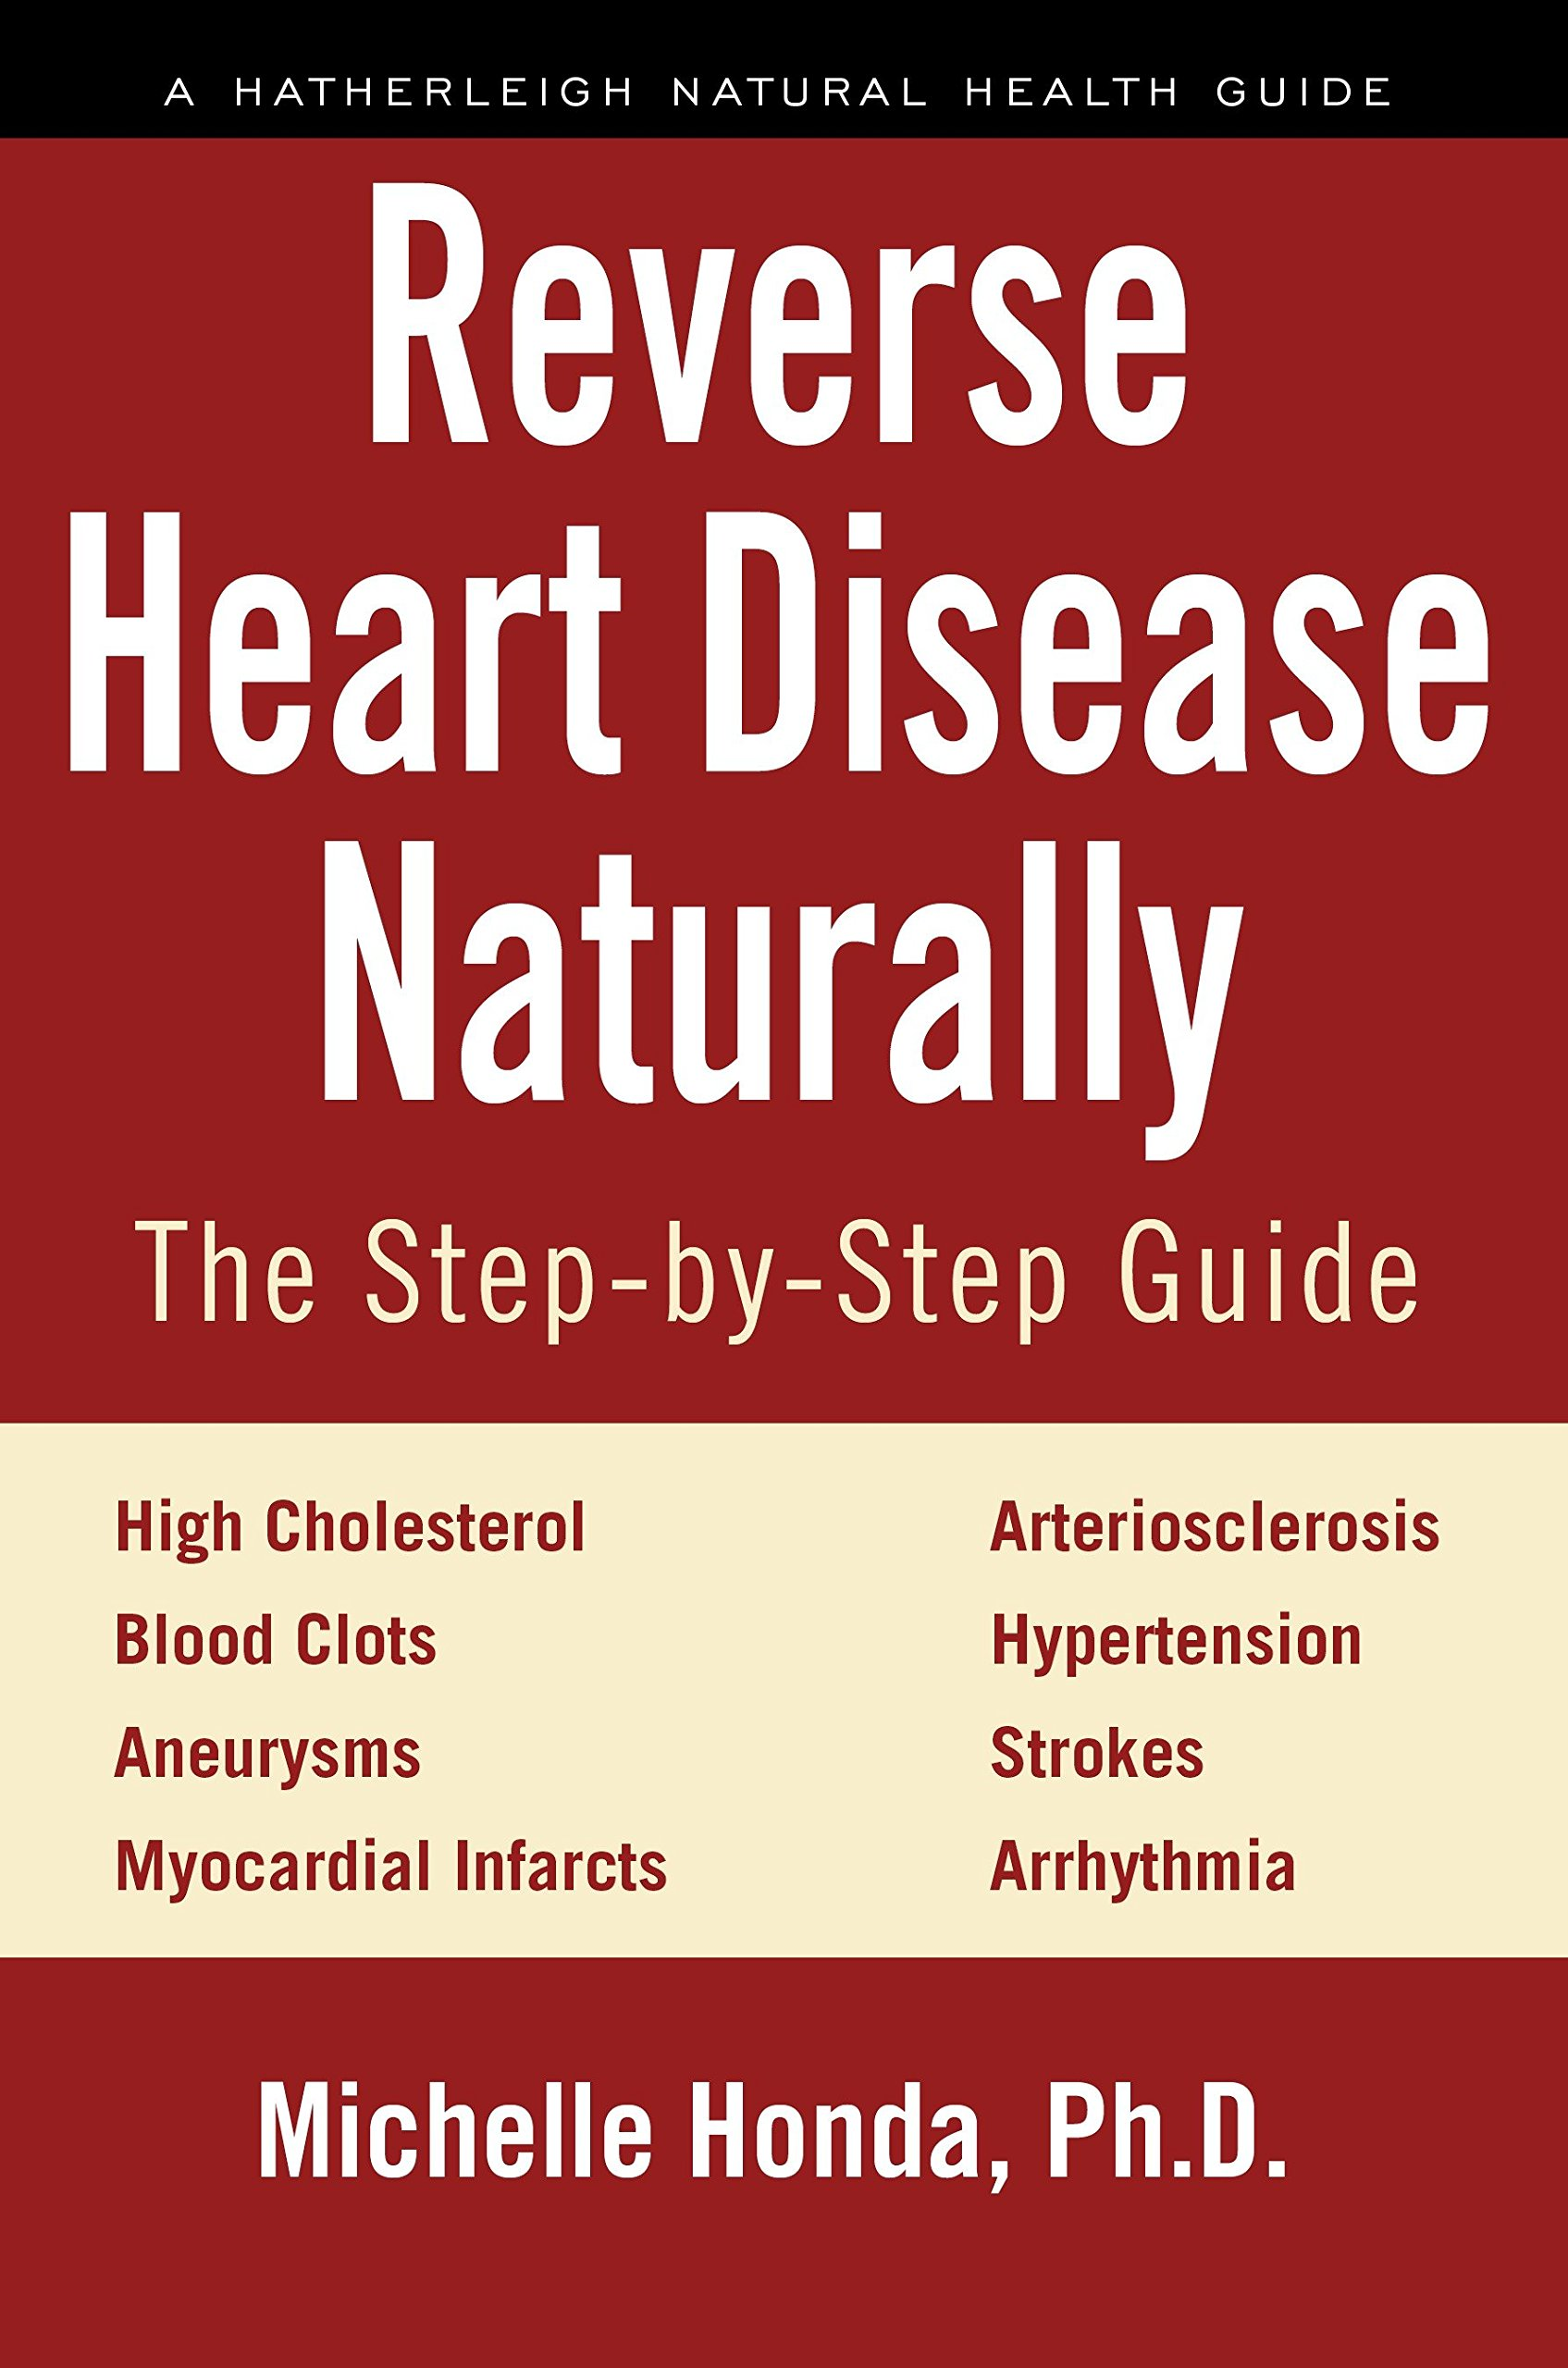 Reverse Heart Disease Naturally: Cures for high cholesterol, hypertension, arteriosclerosis, blood clots, aneurysms, myocardial infarcts and more. (Hatherleigh Natural Health Guides) PDF